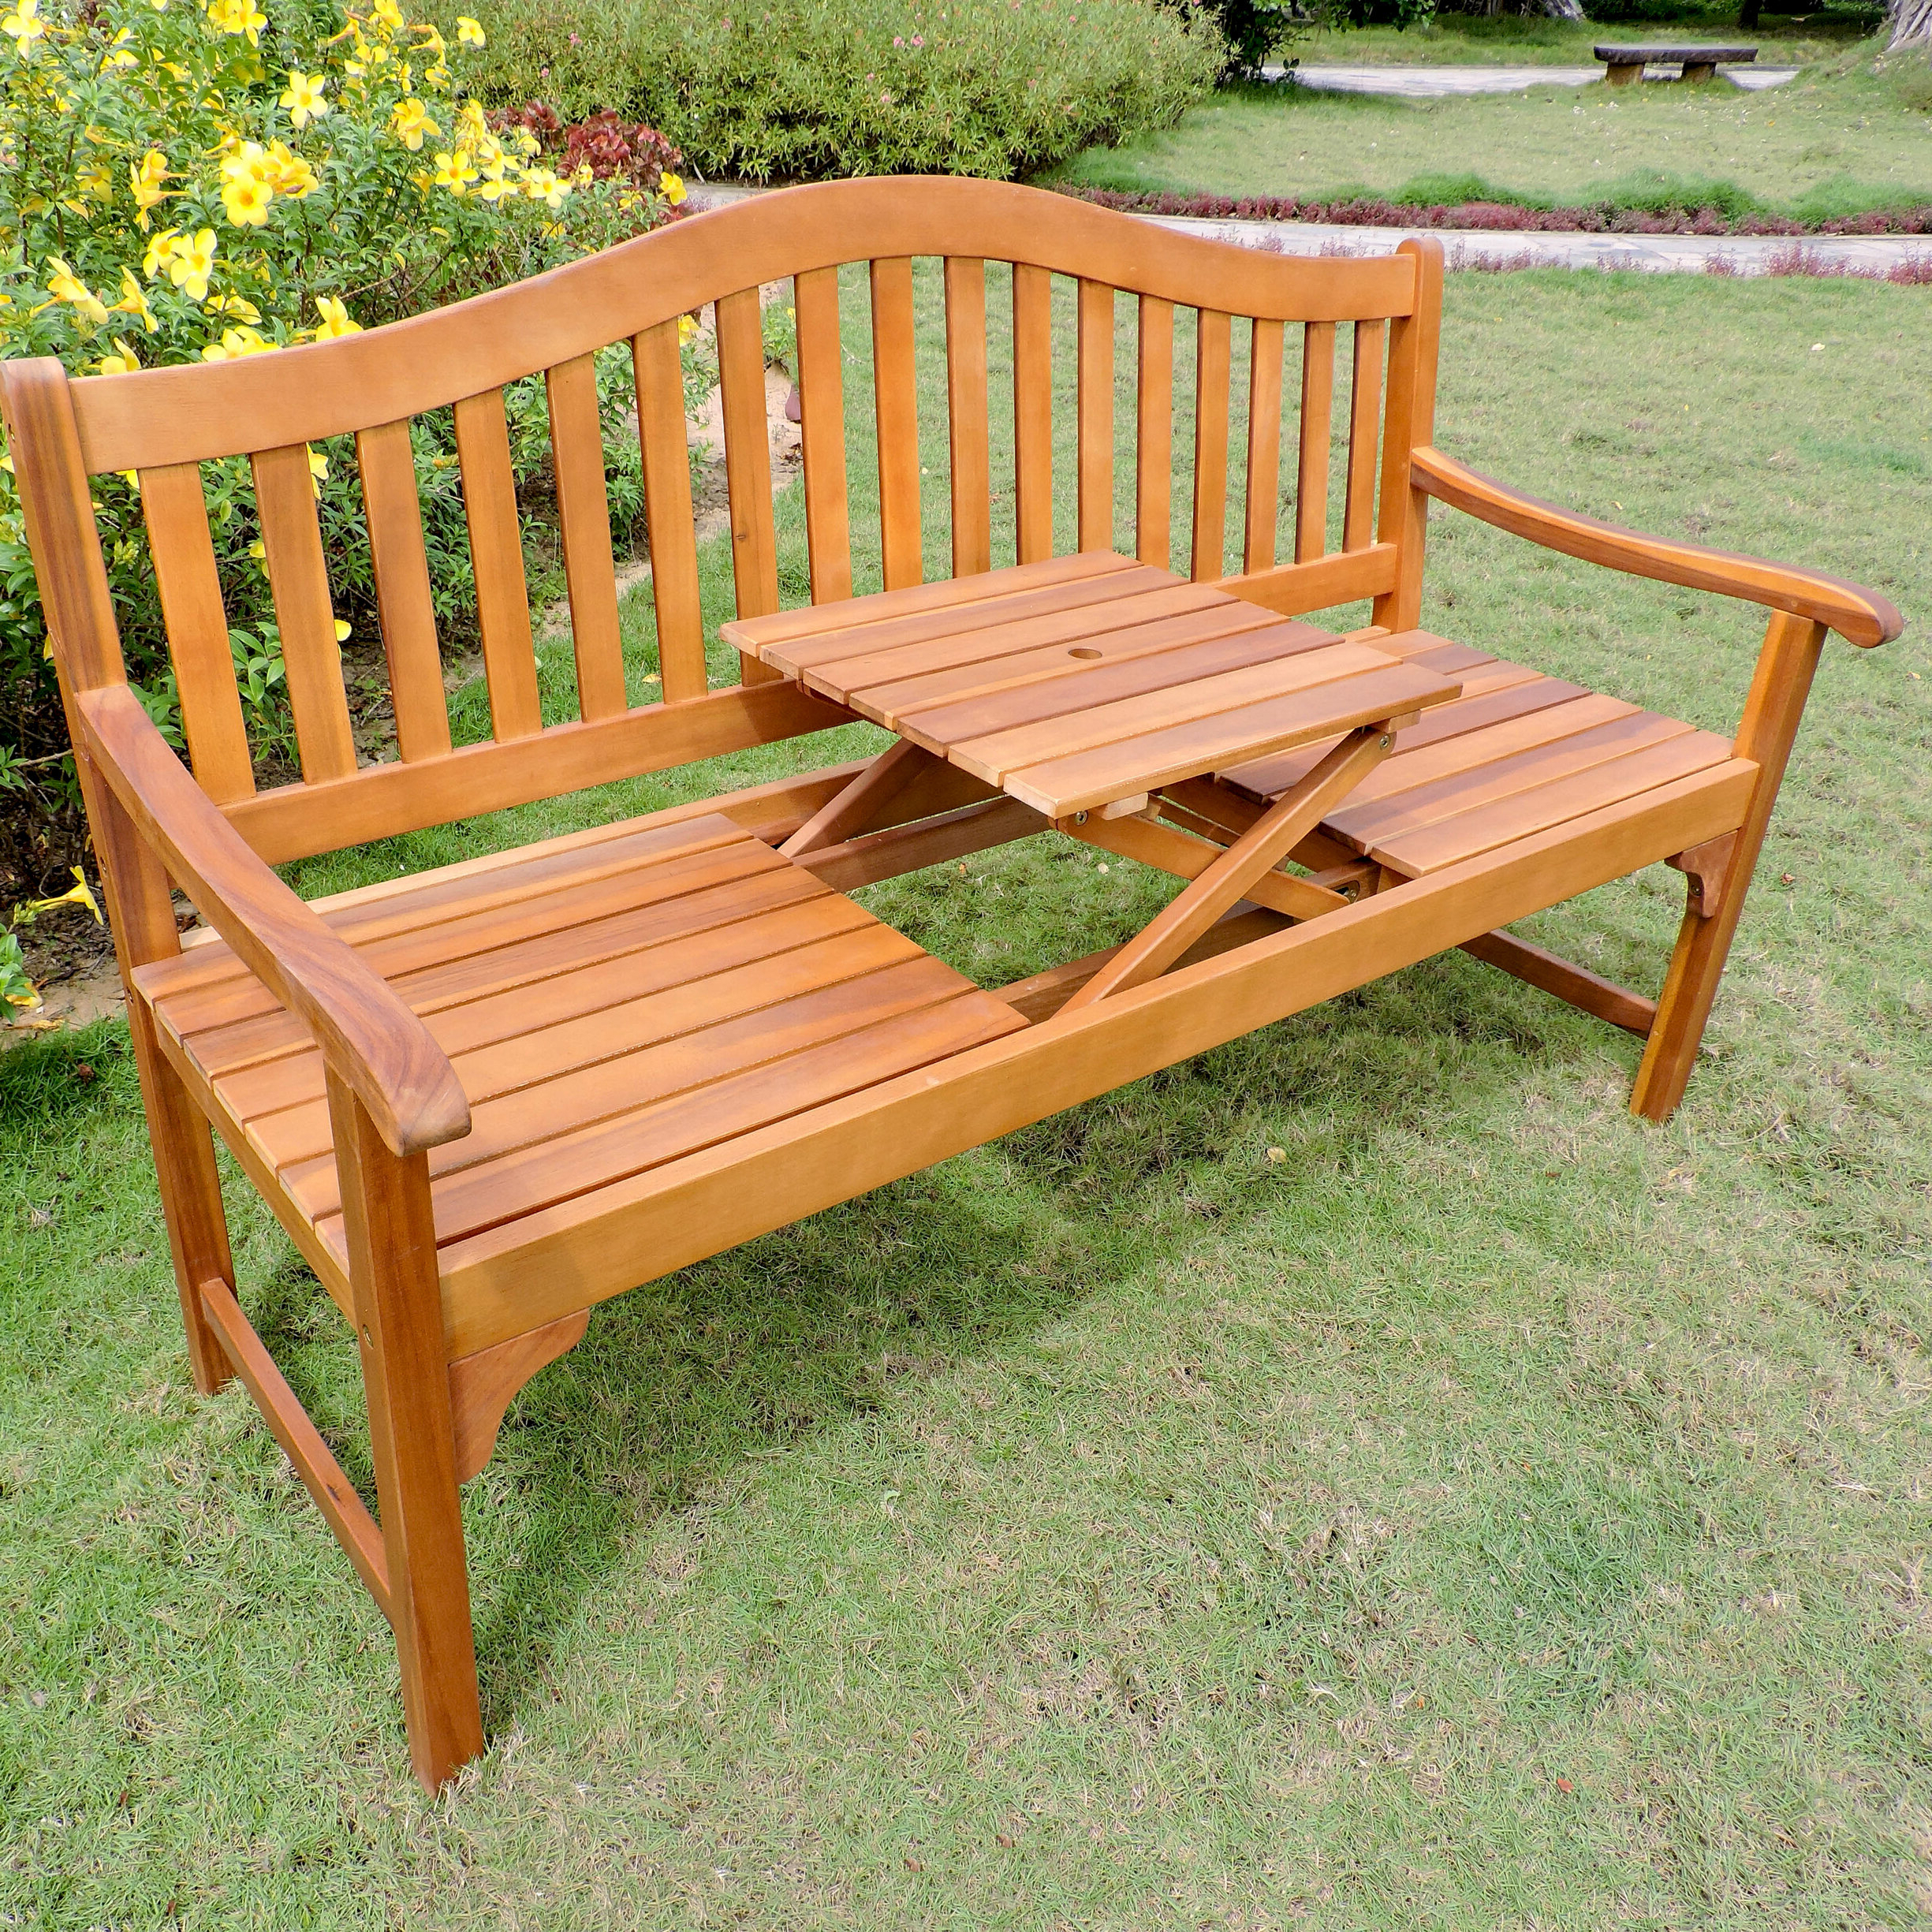 Leone Wooden Garden Bench Pertaining To Most Popular Leora Wooden Garden Benches (View 8 of 30)